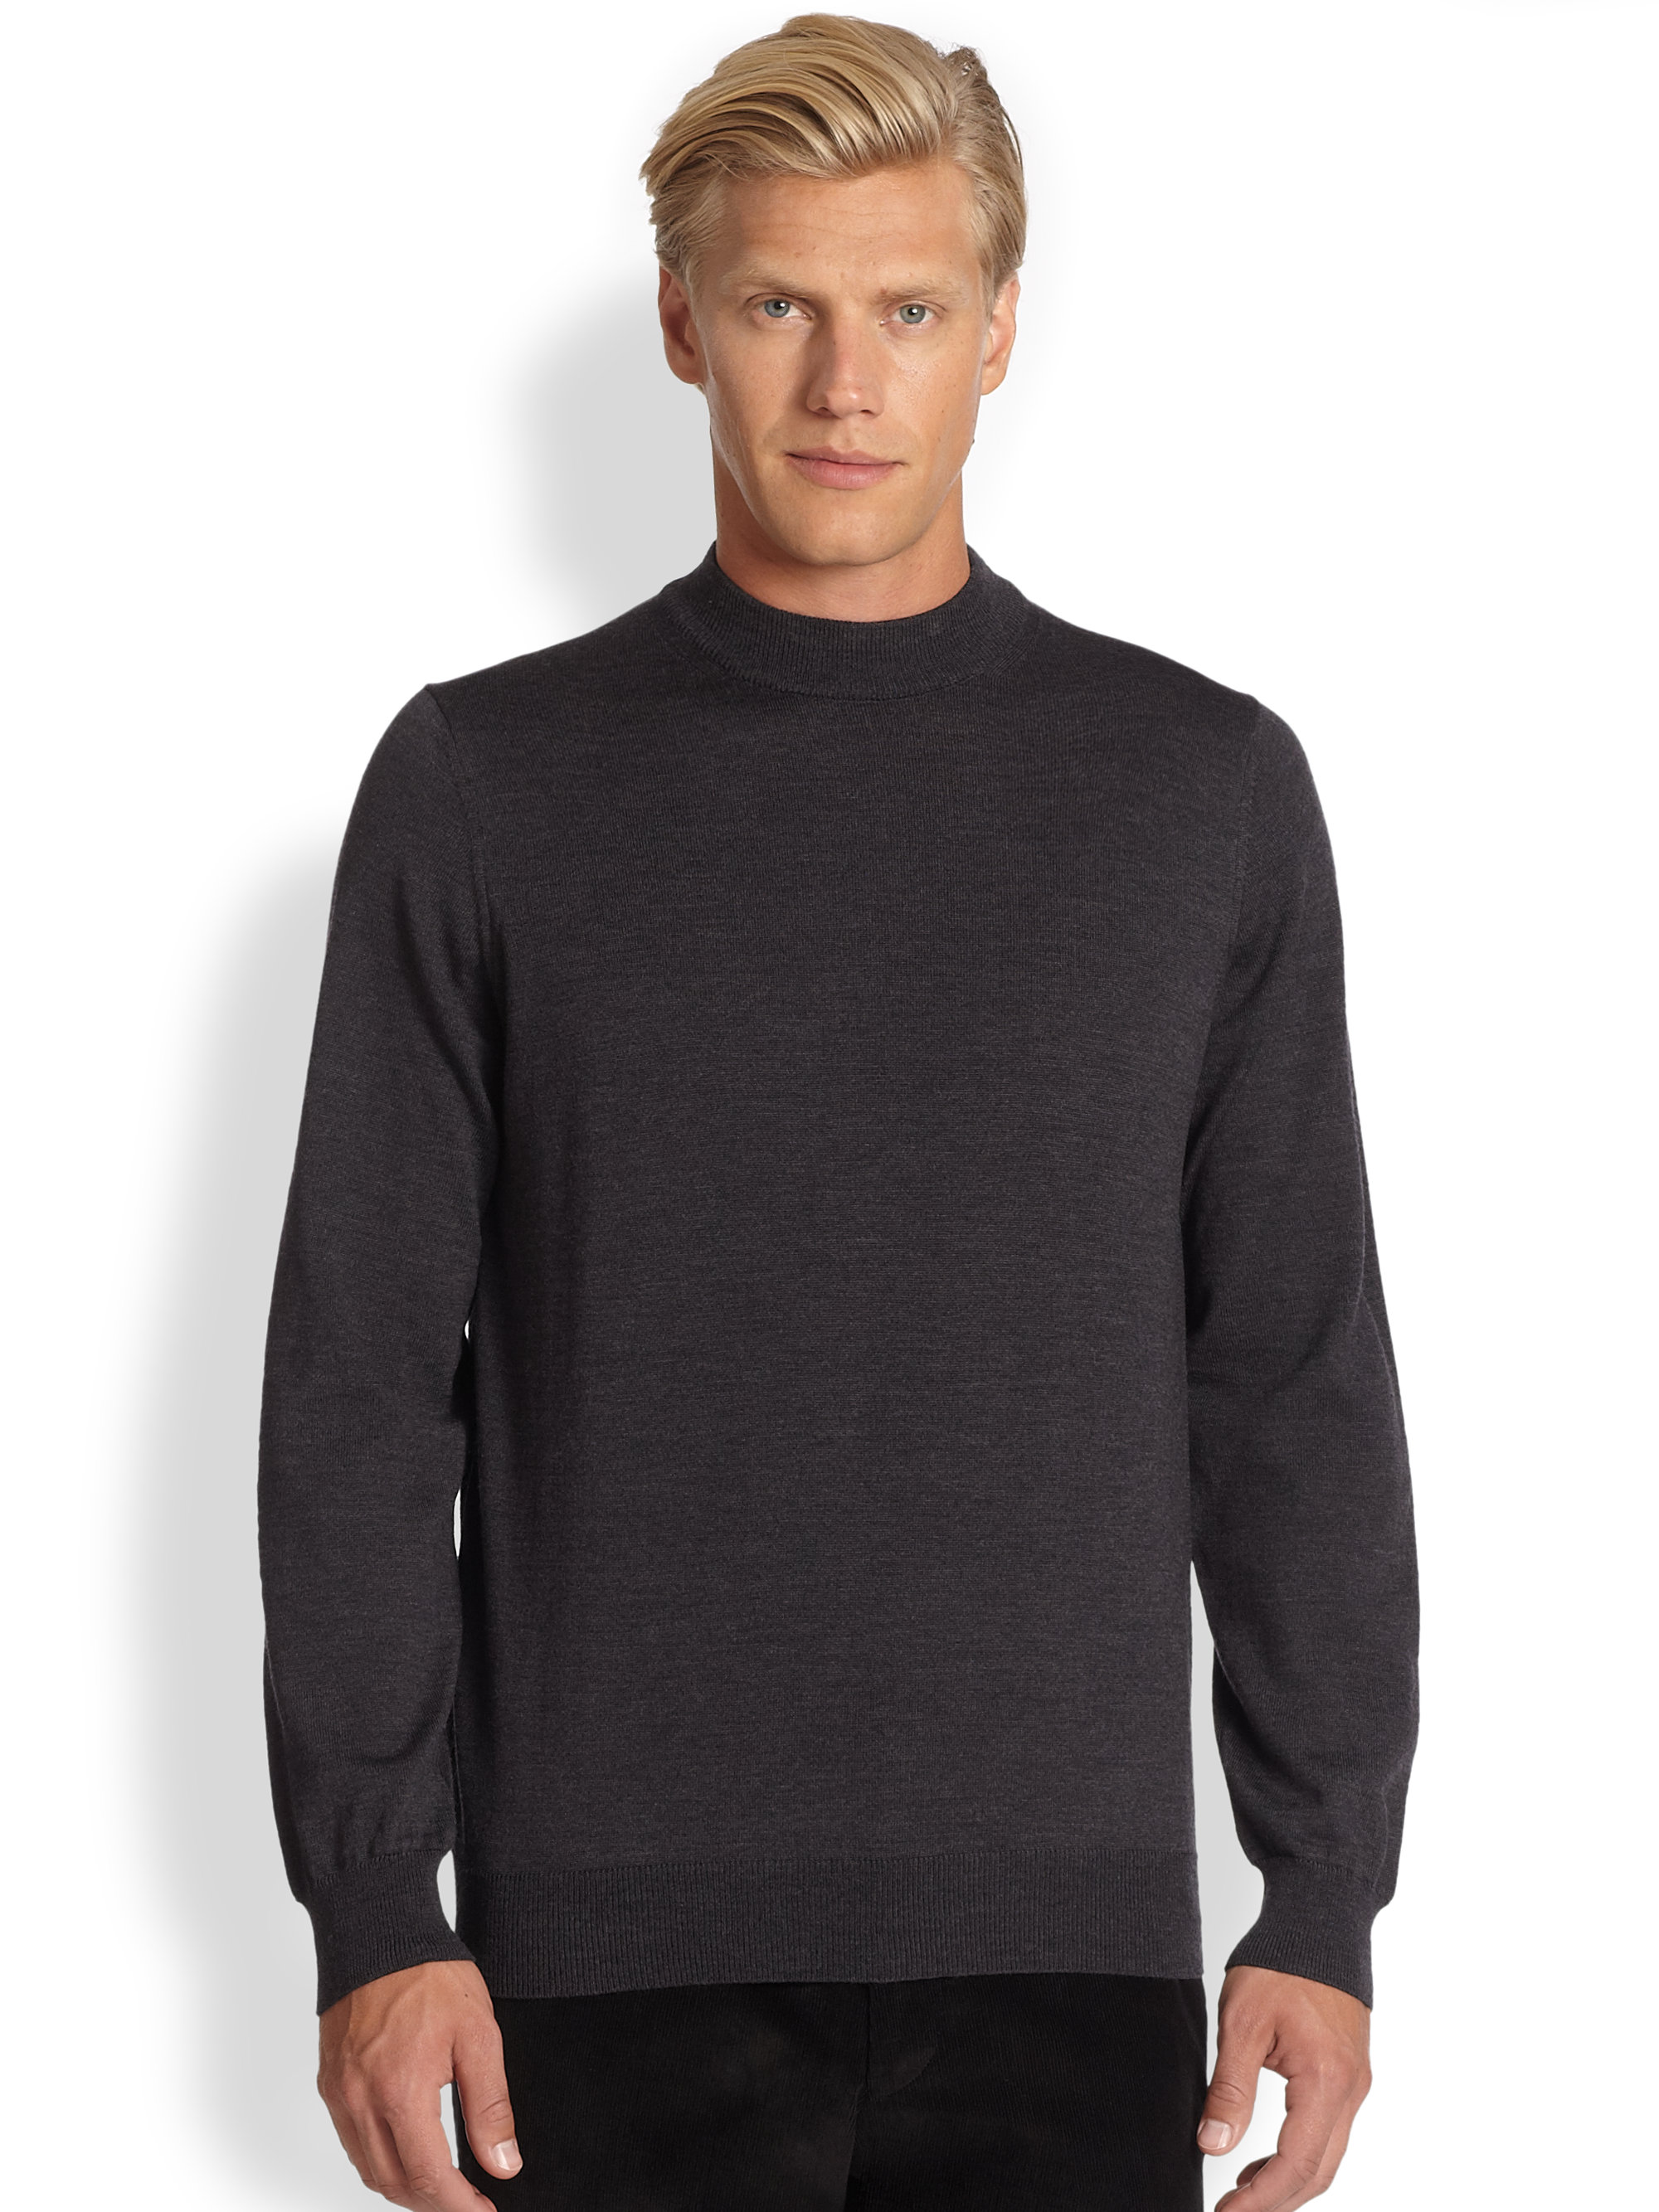 Saks fifth avenue black label Wool Mock Turtleneck Sweater in Gray ...